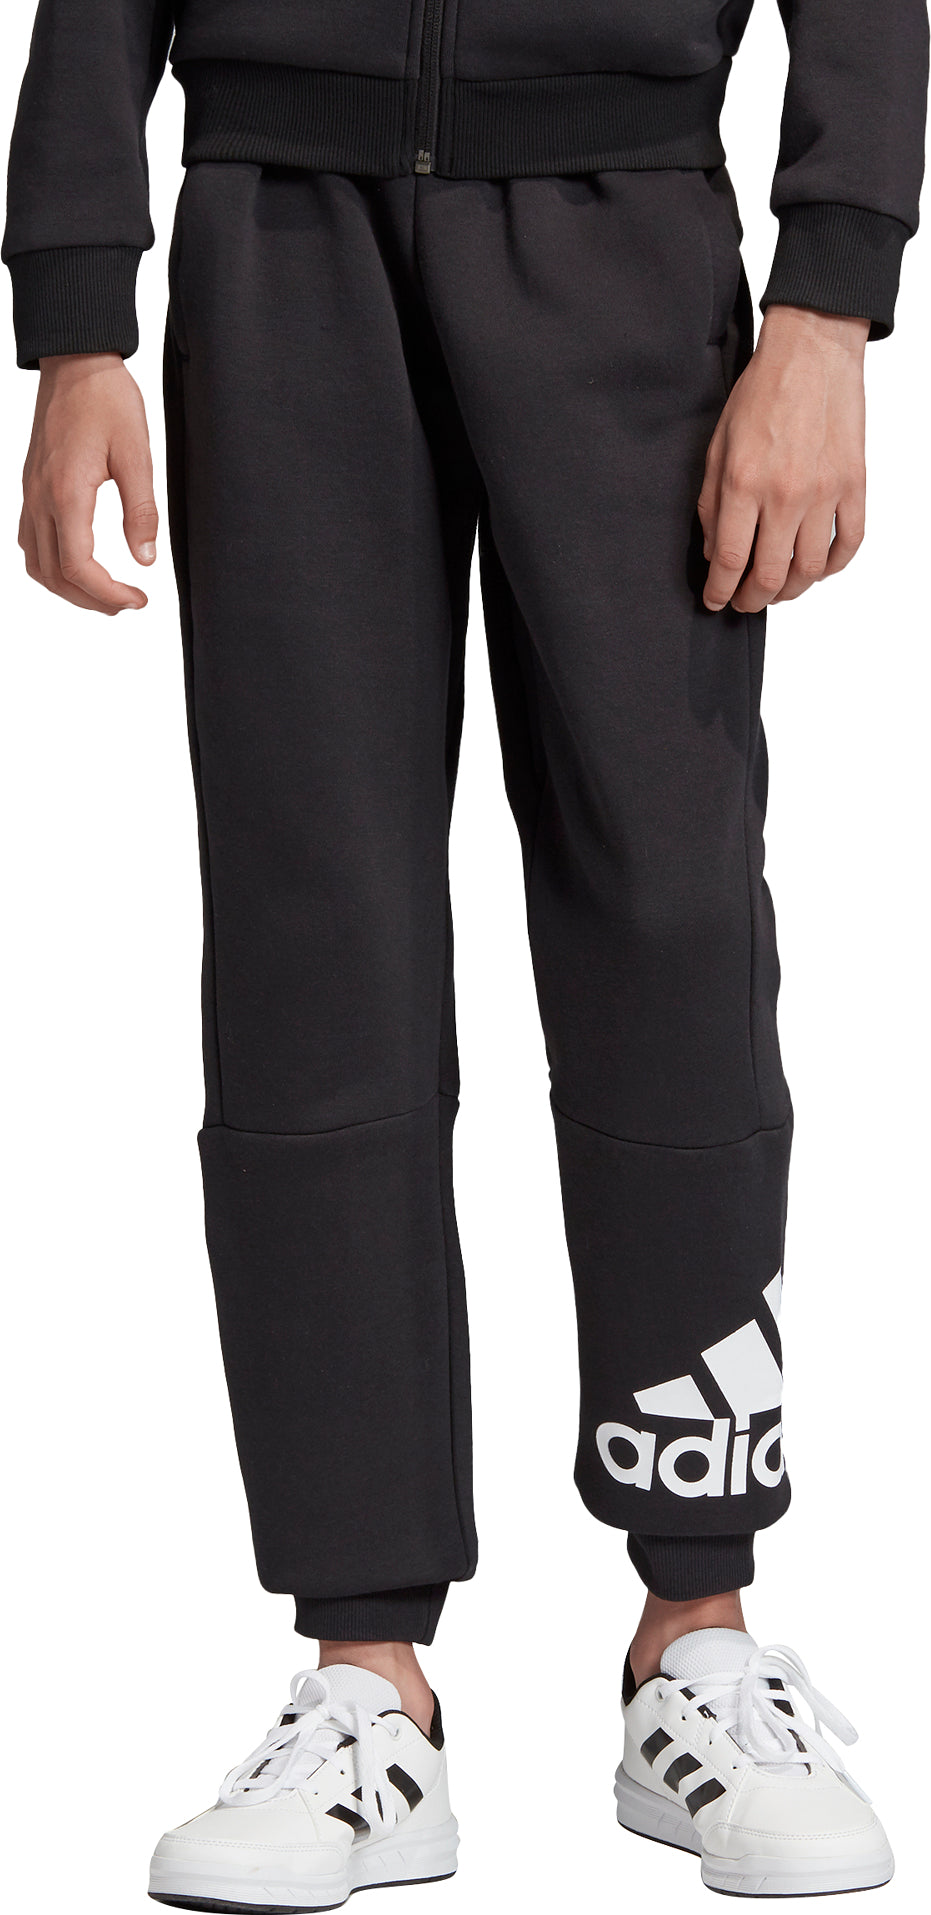 Adidas Must Haves Badge of Sport Fleece Pants Boy's